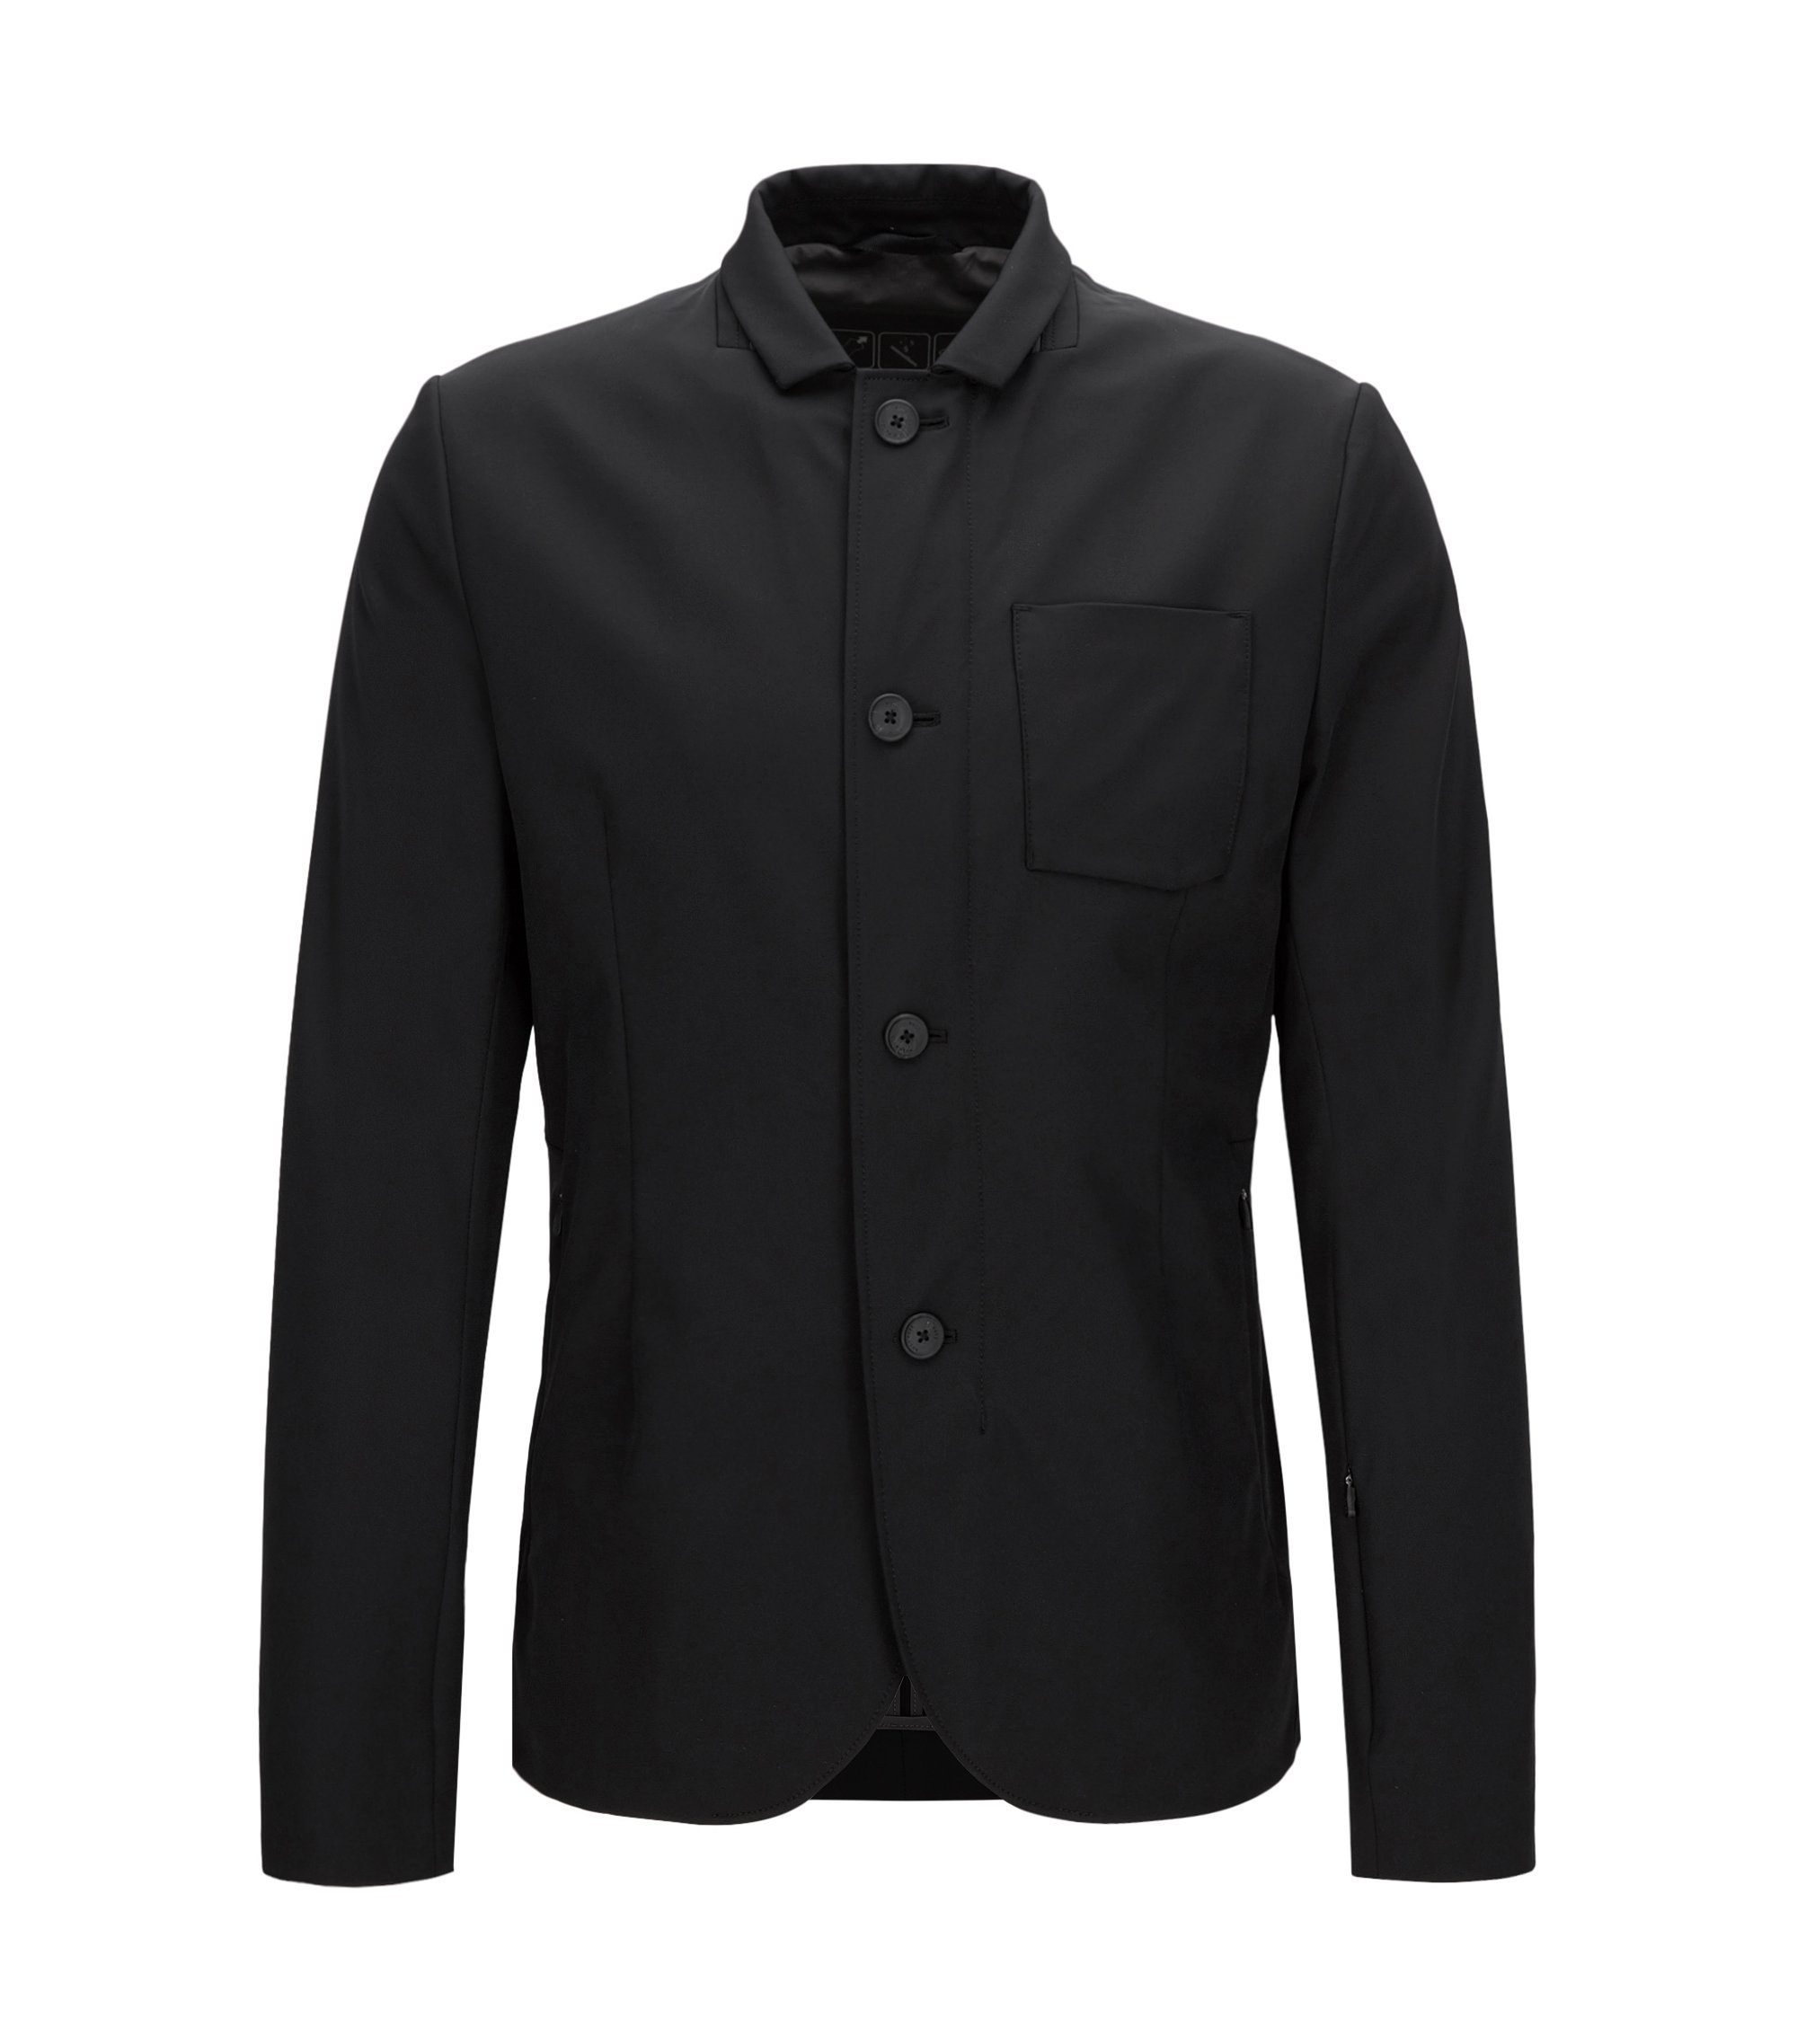 Nylon Travel Jacket | Ayvon BS, Black